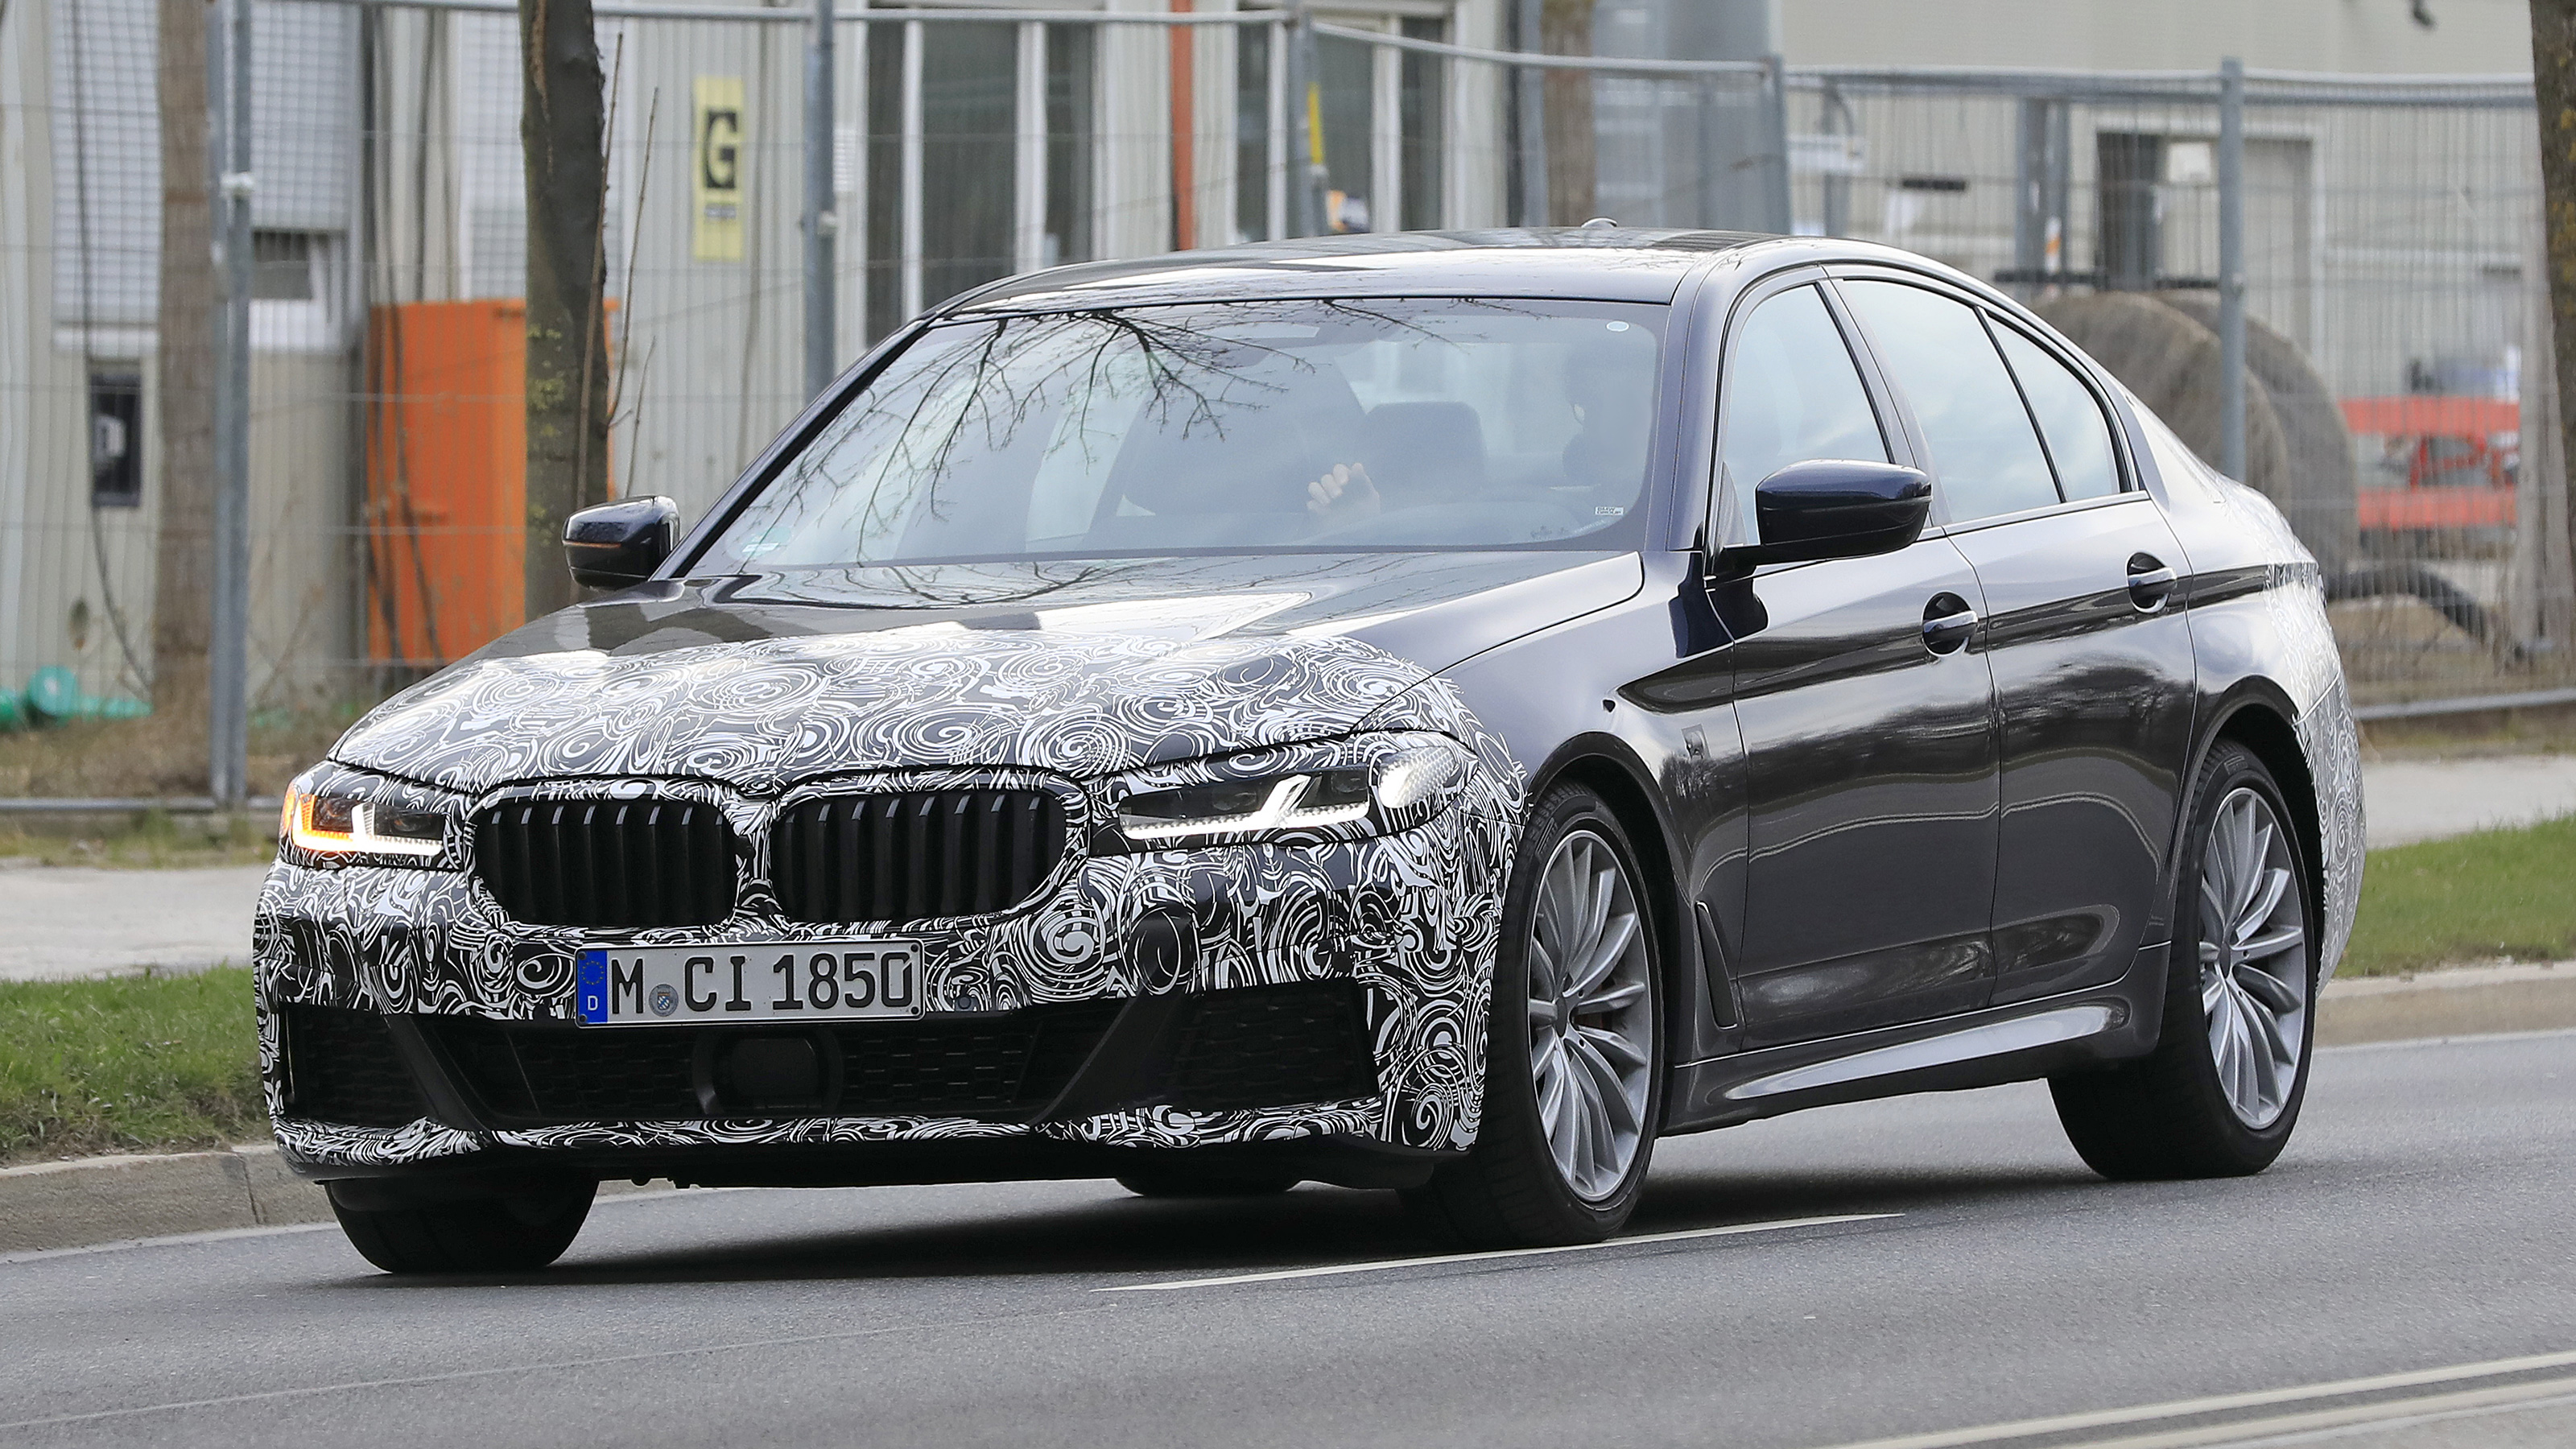 New 2020 BMW 5 Series leaked ahead of official reveal ...